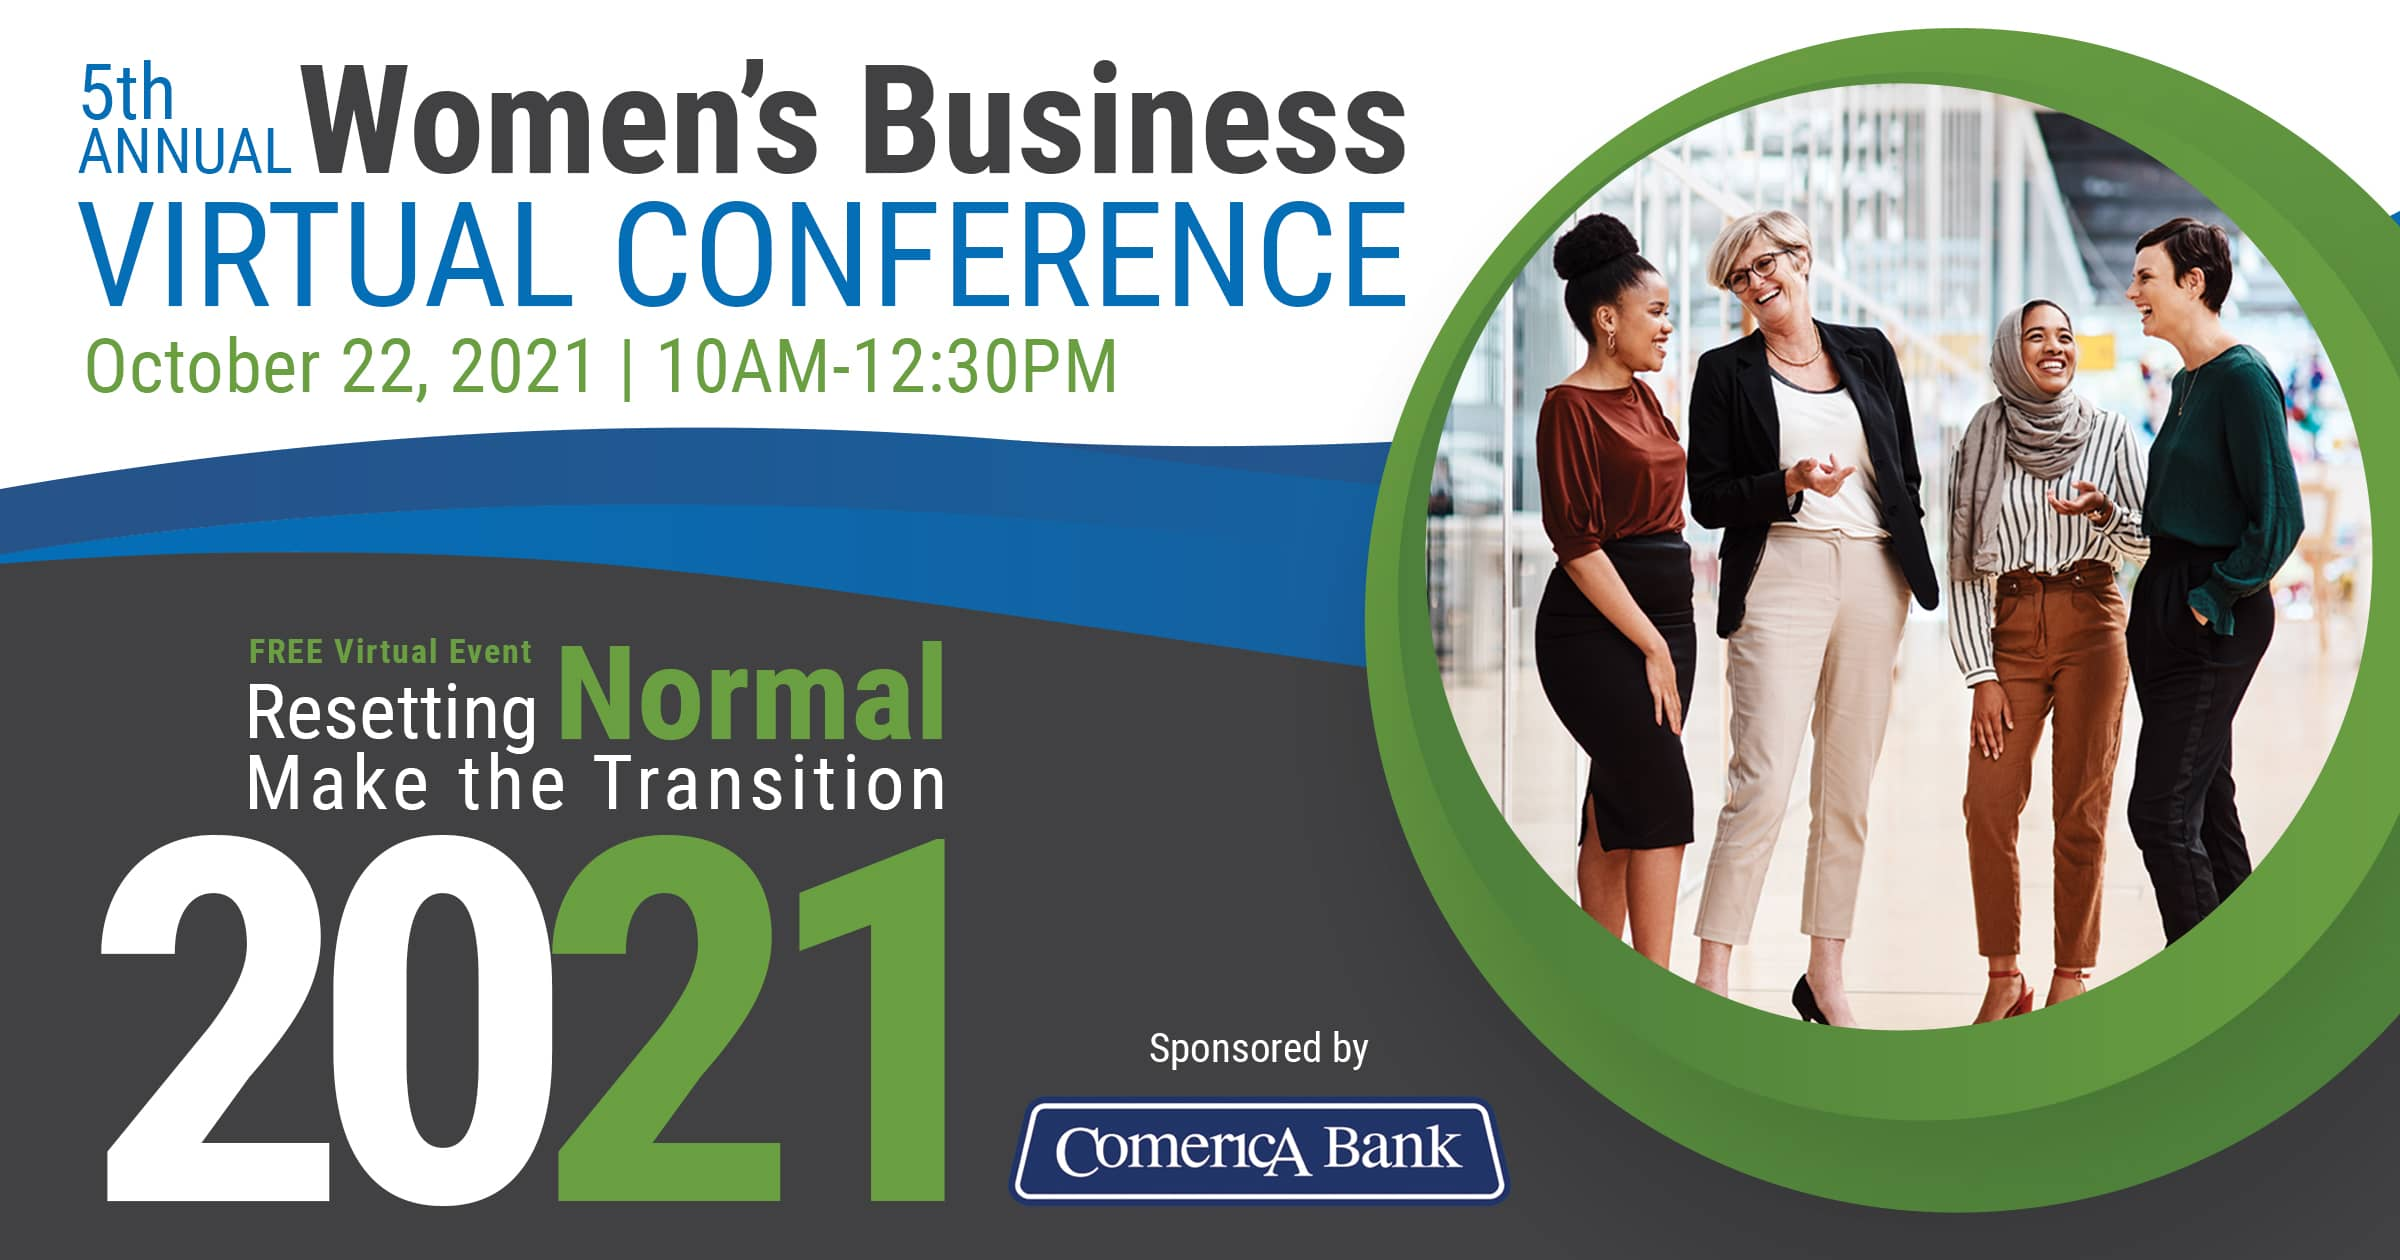 SCORE 5th Annual Women's Business Conference